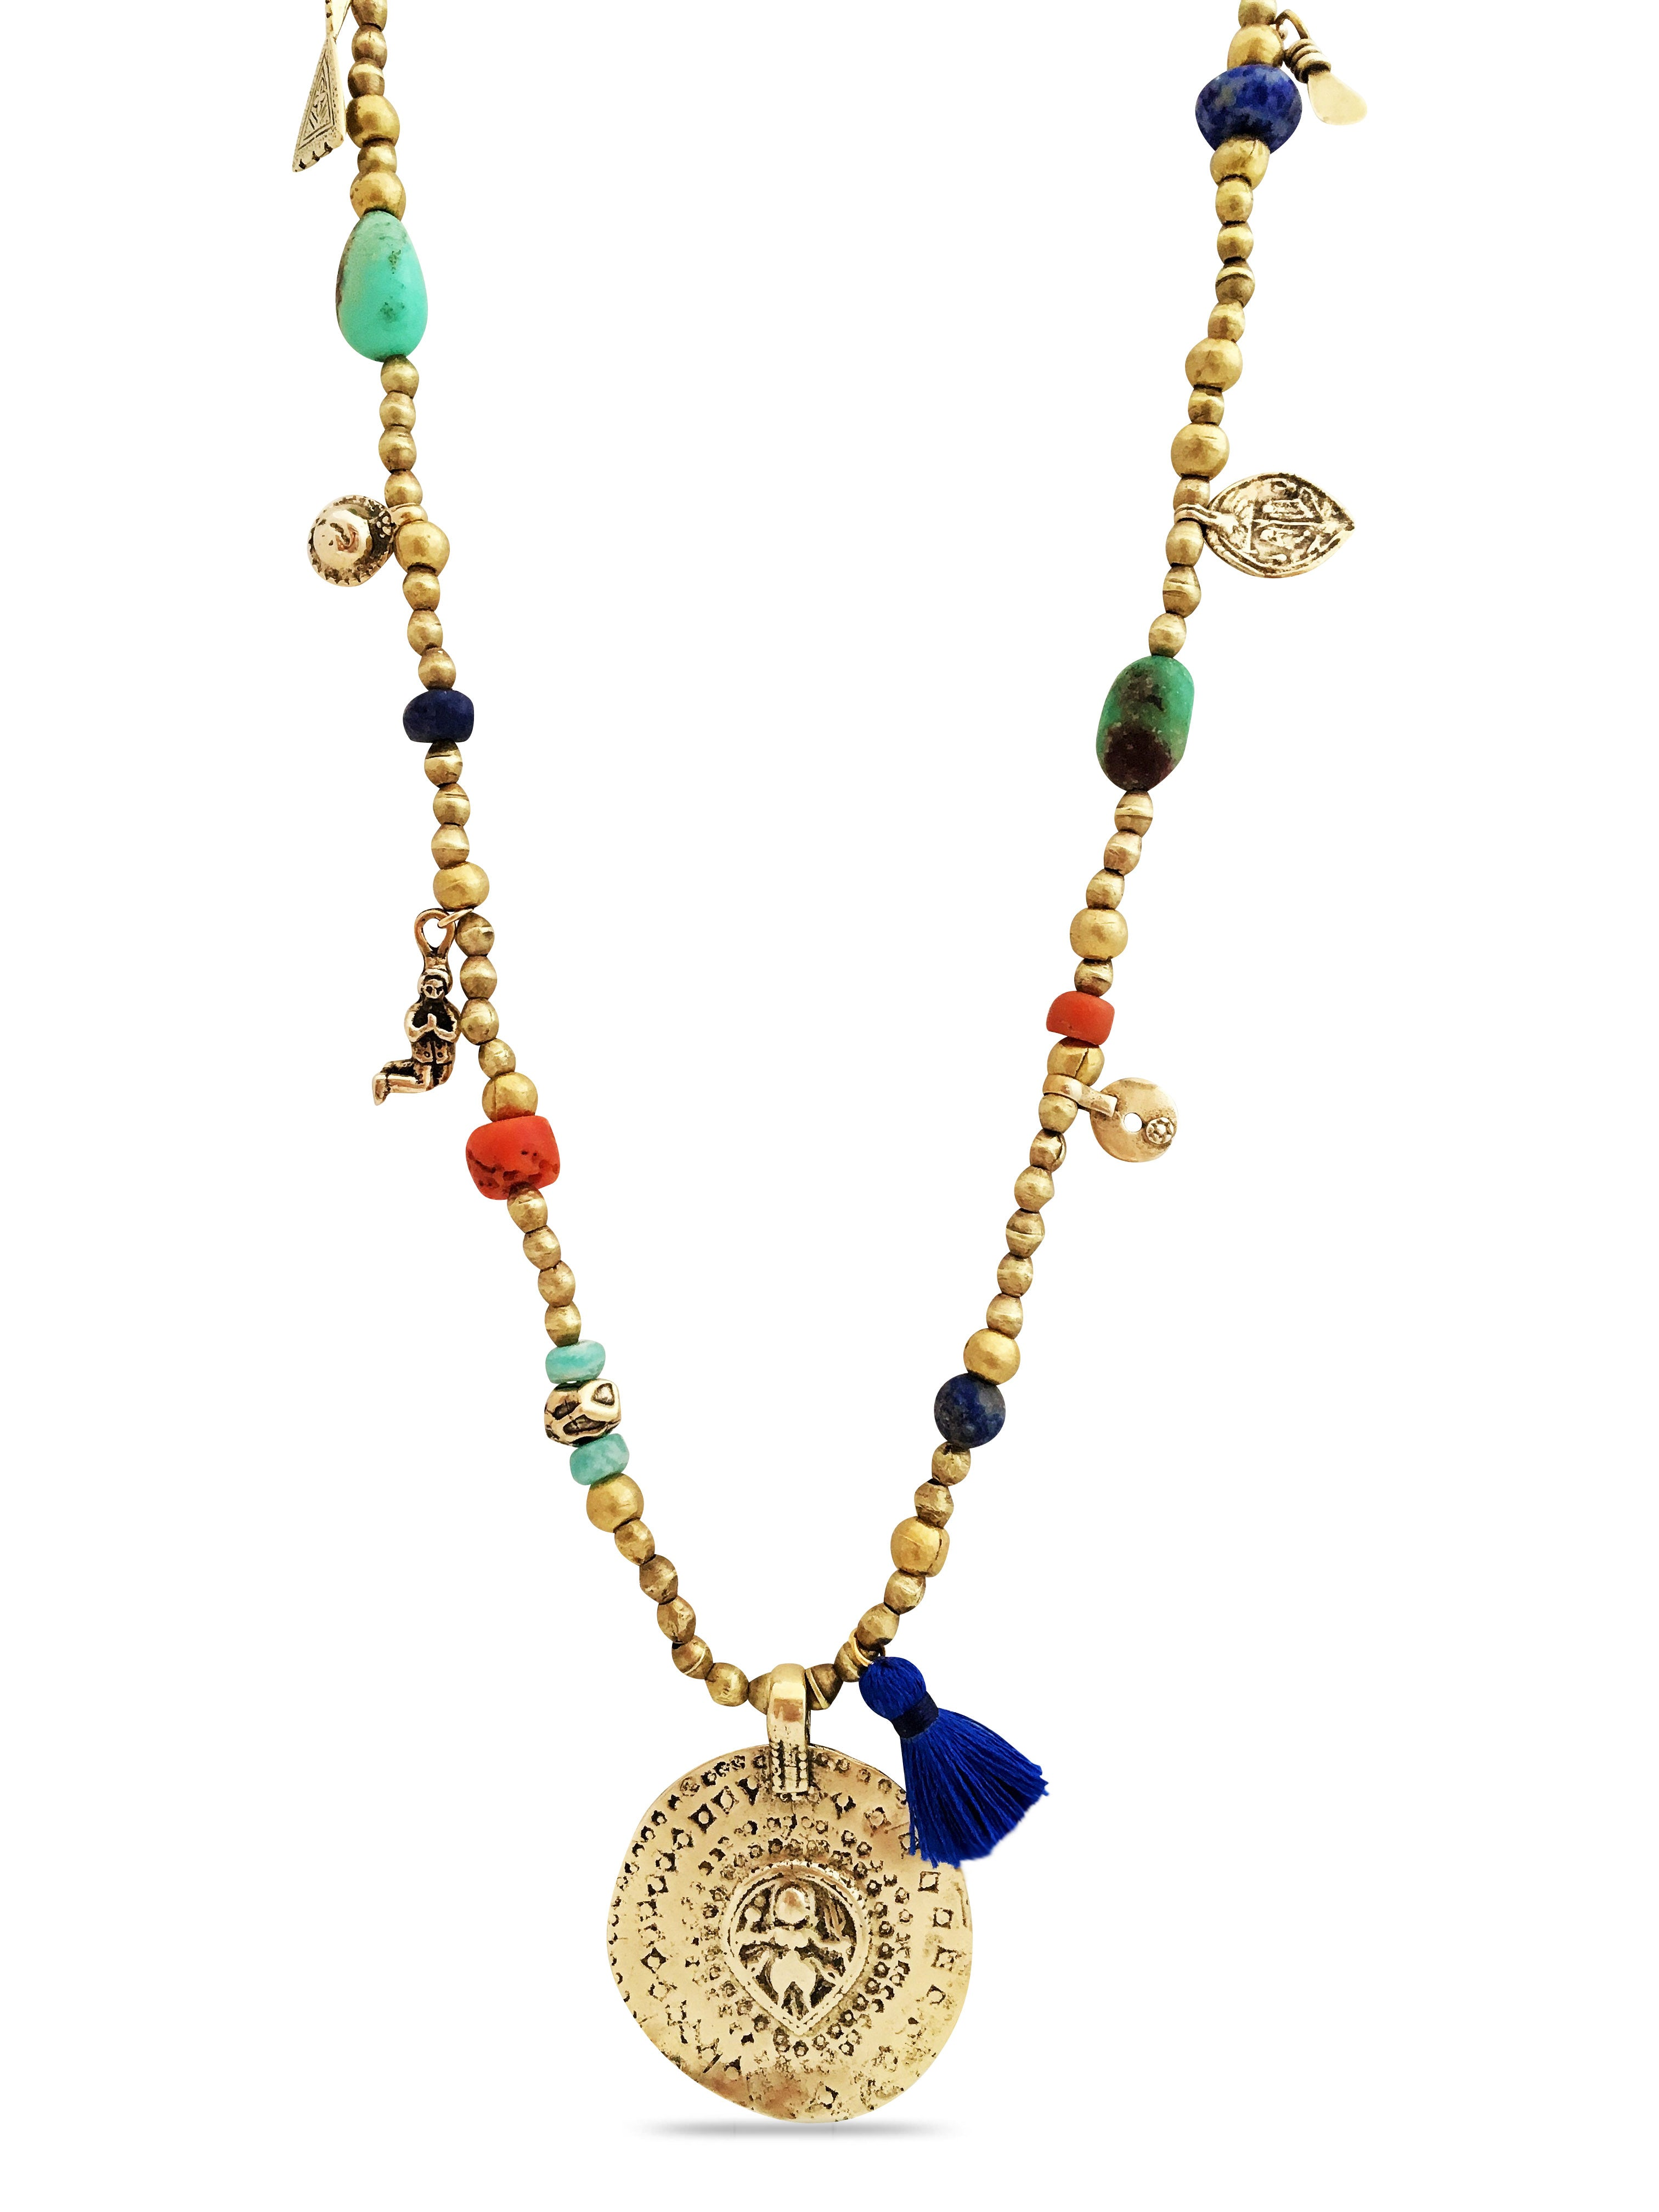 Shiva New Beginnings Necklace